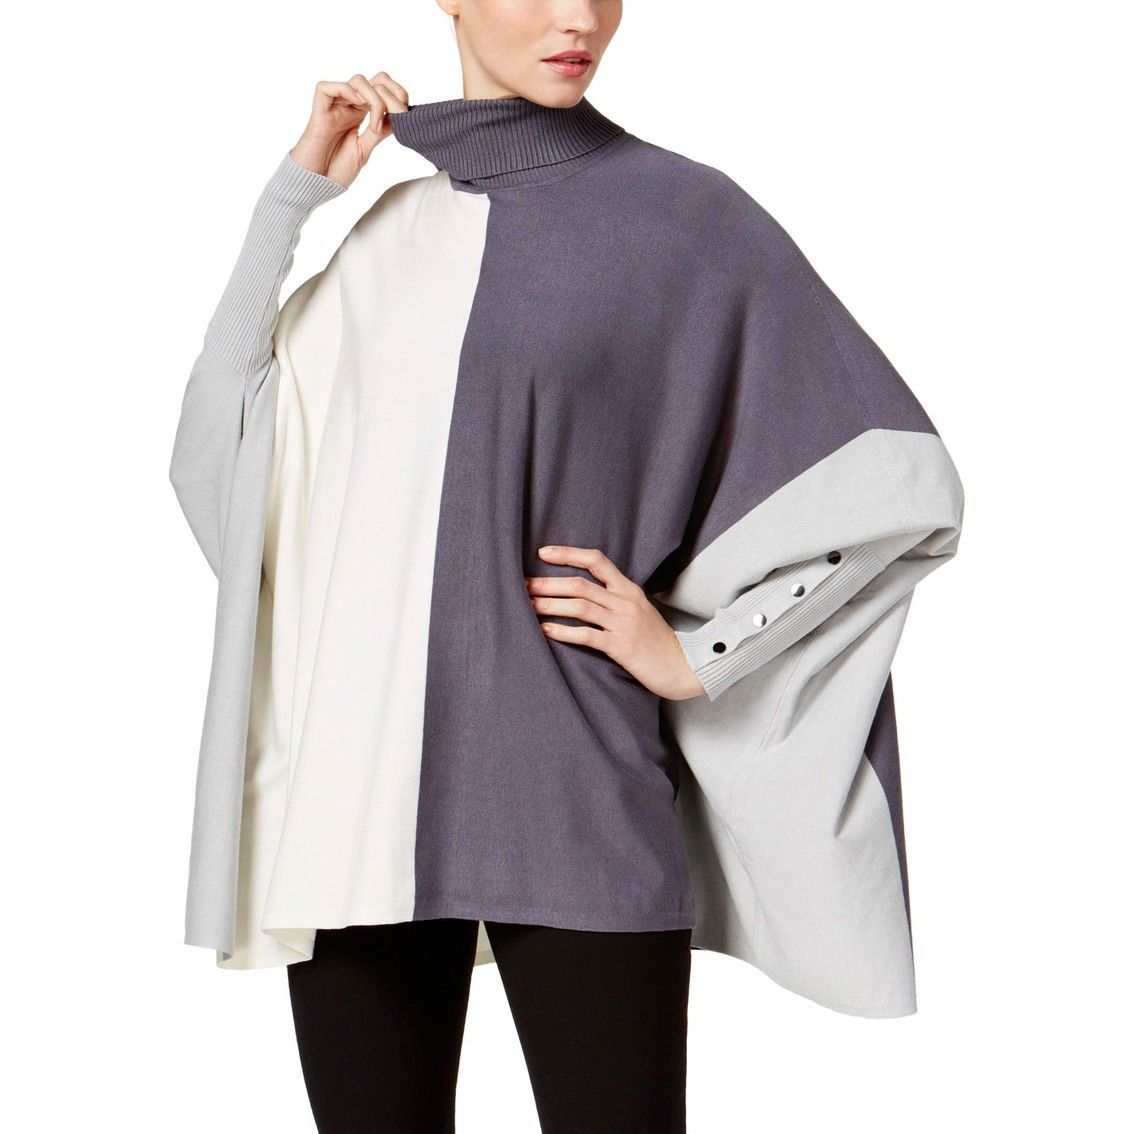 Primary image for Alfani Womens Colorblock Button Sleeve Turtleneck Poncho Sweater Grey Size M $59